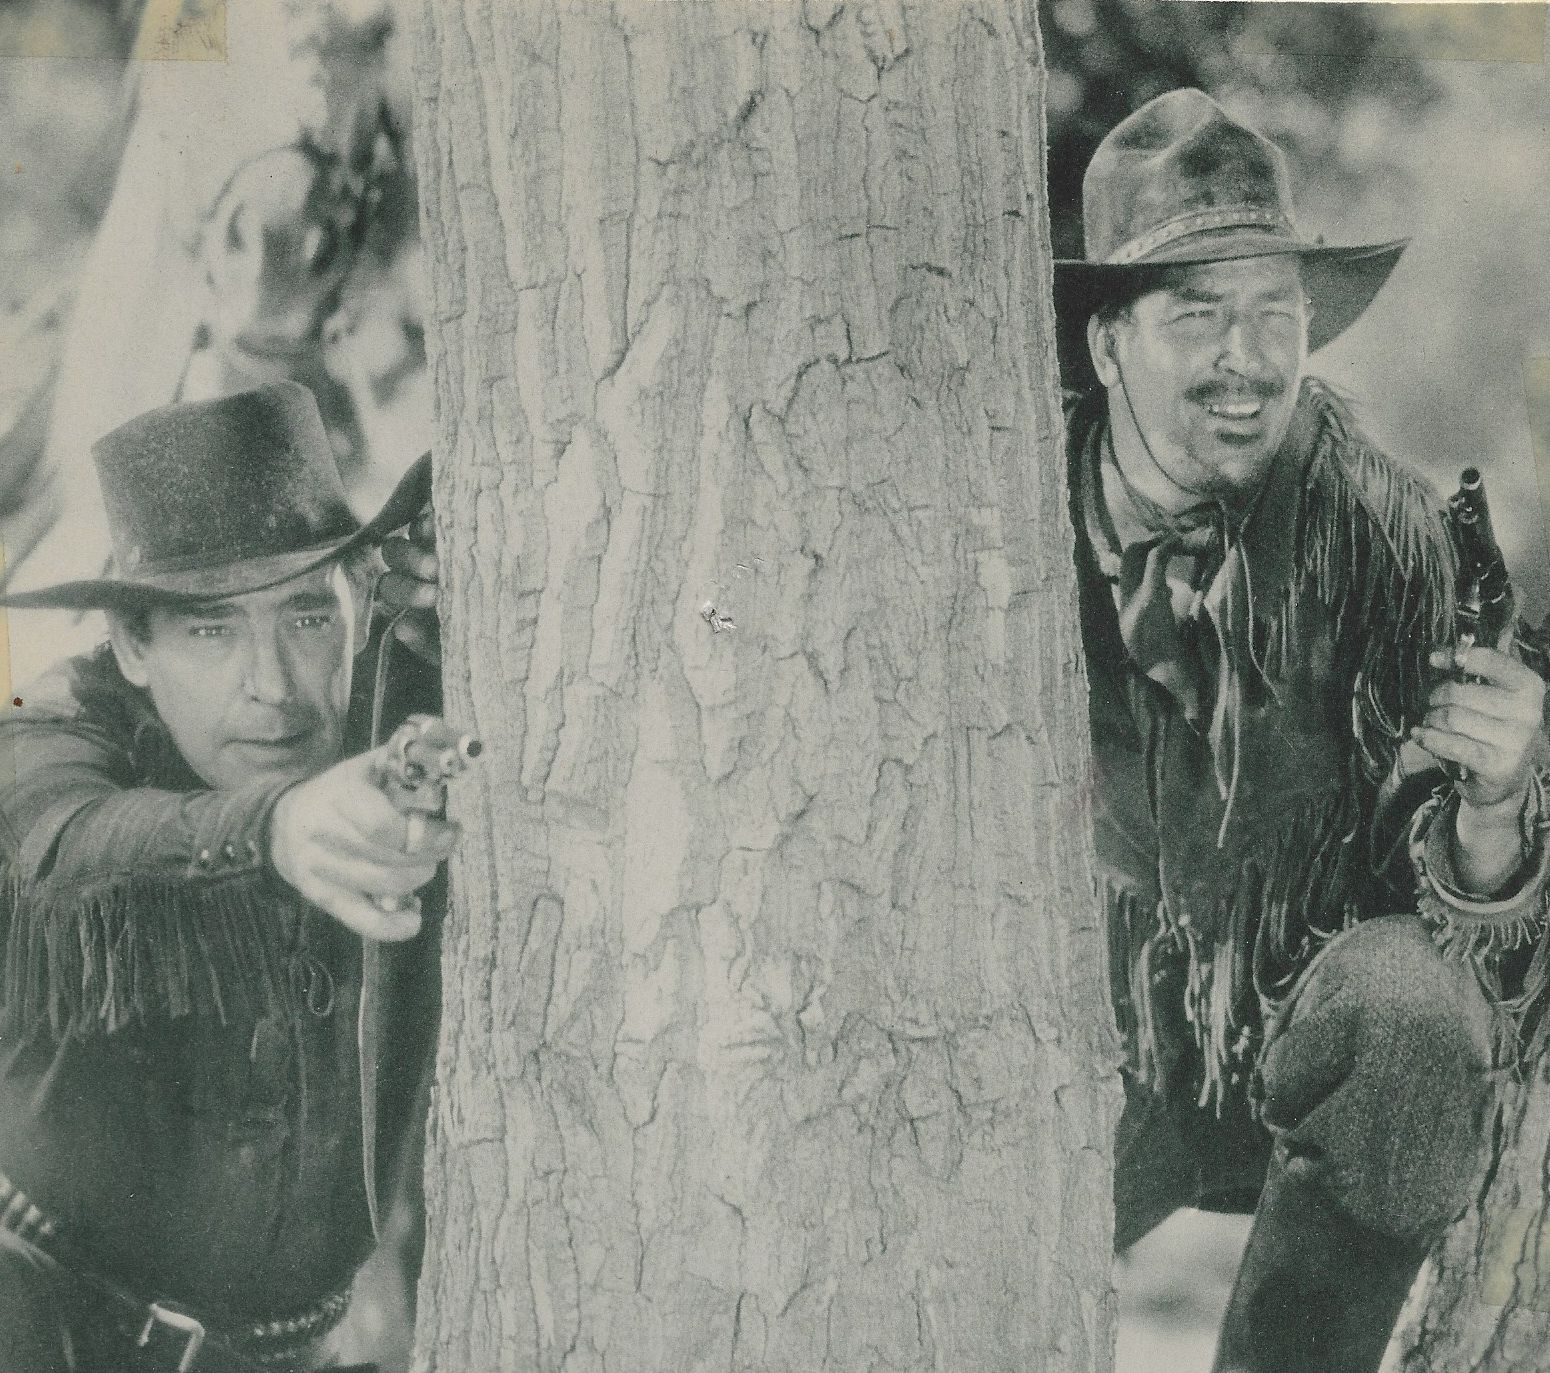 Lon Chaney Jr. and Don Terry in Overland Mail (1942)